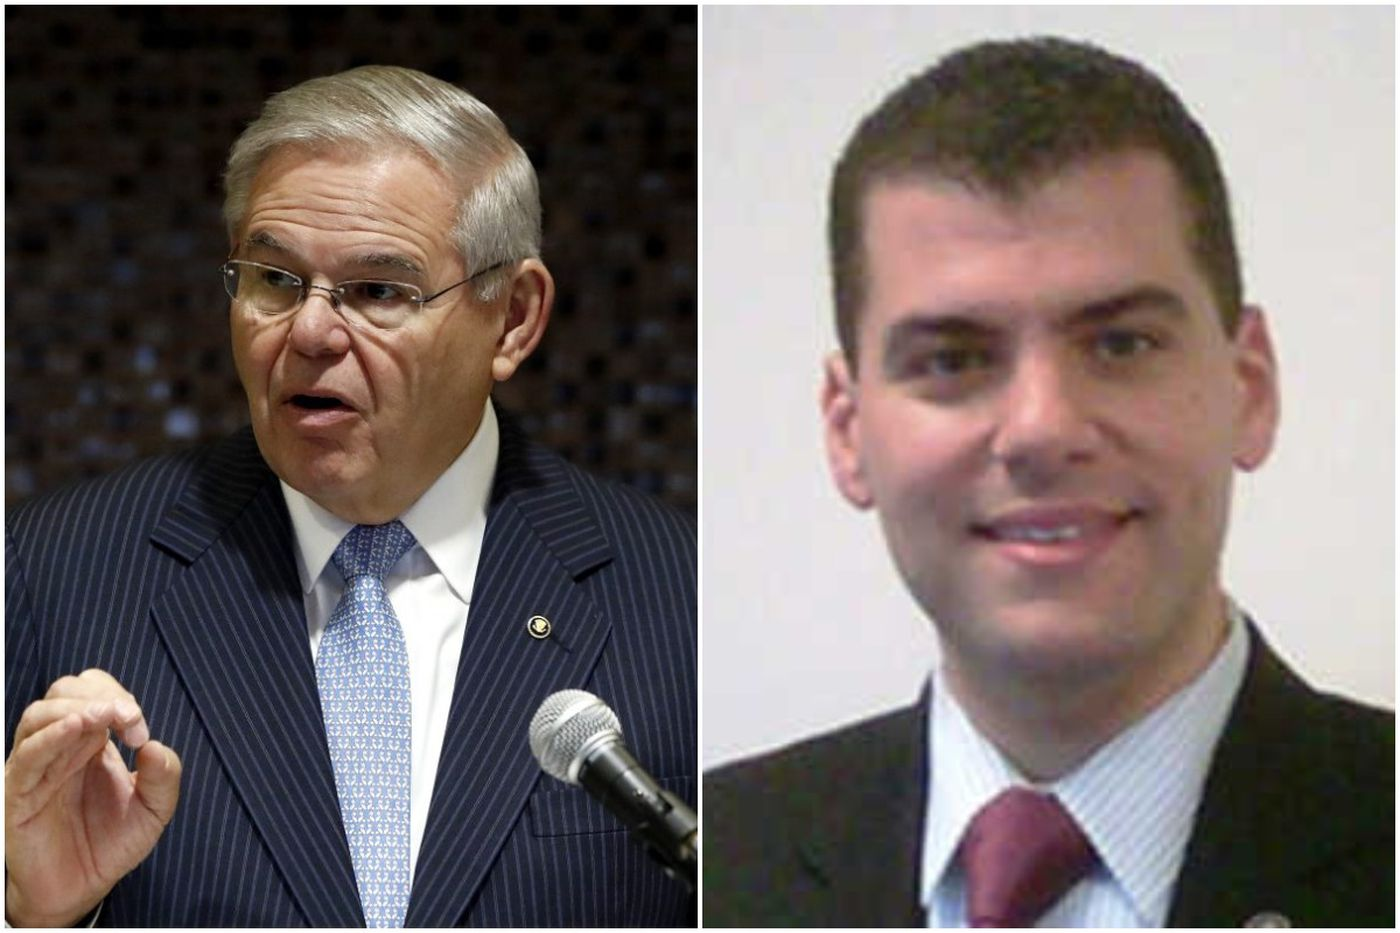 N.J.'s Bob Menendez is top foreign relations Democrat in Senate. His campaign chief is a lobbyist for Qatar.